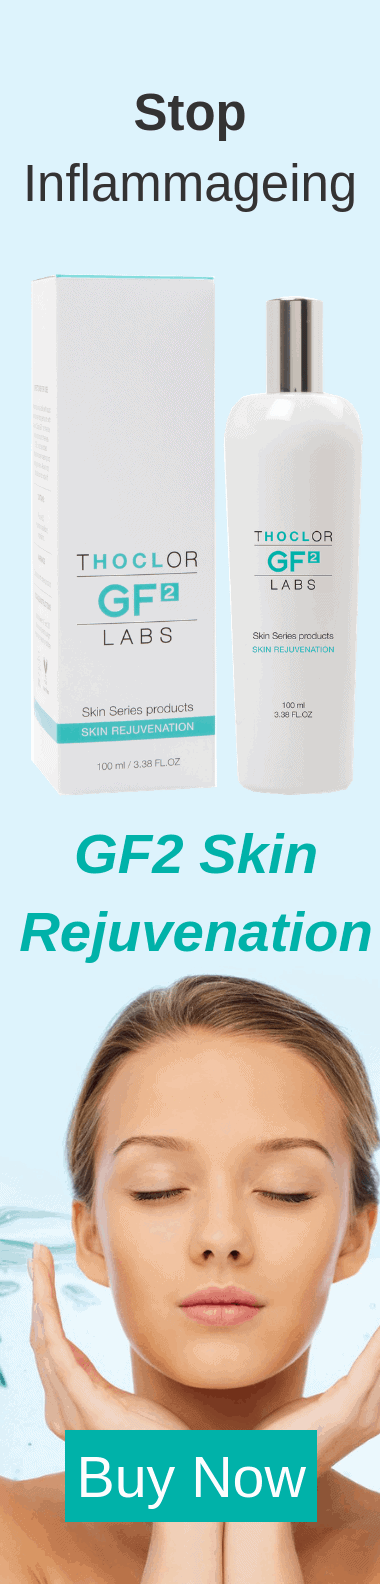 Stop Inflammageing with GF2